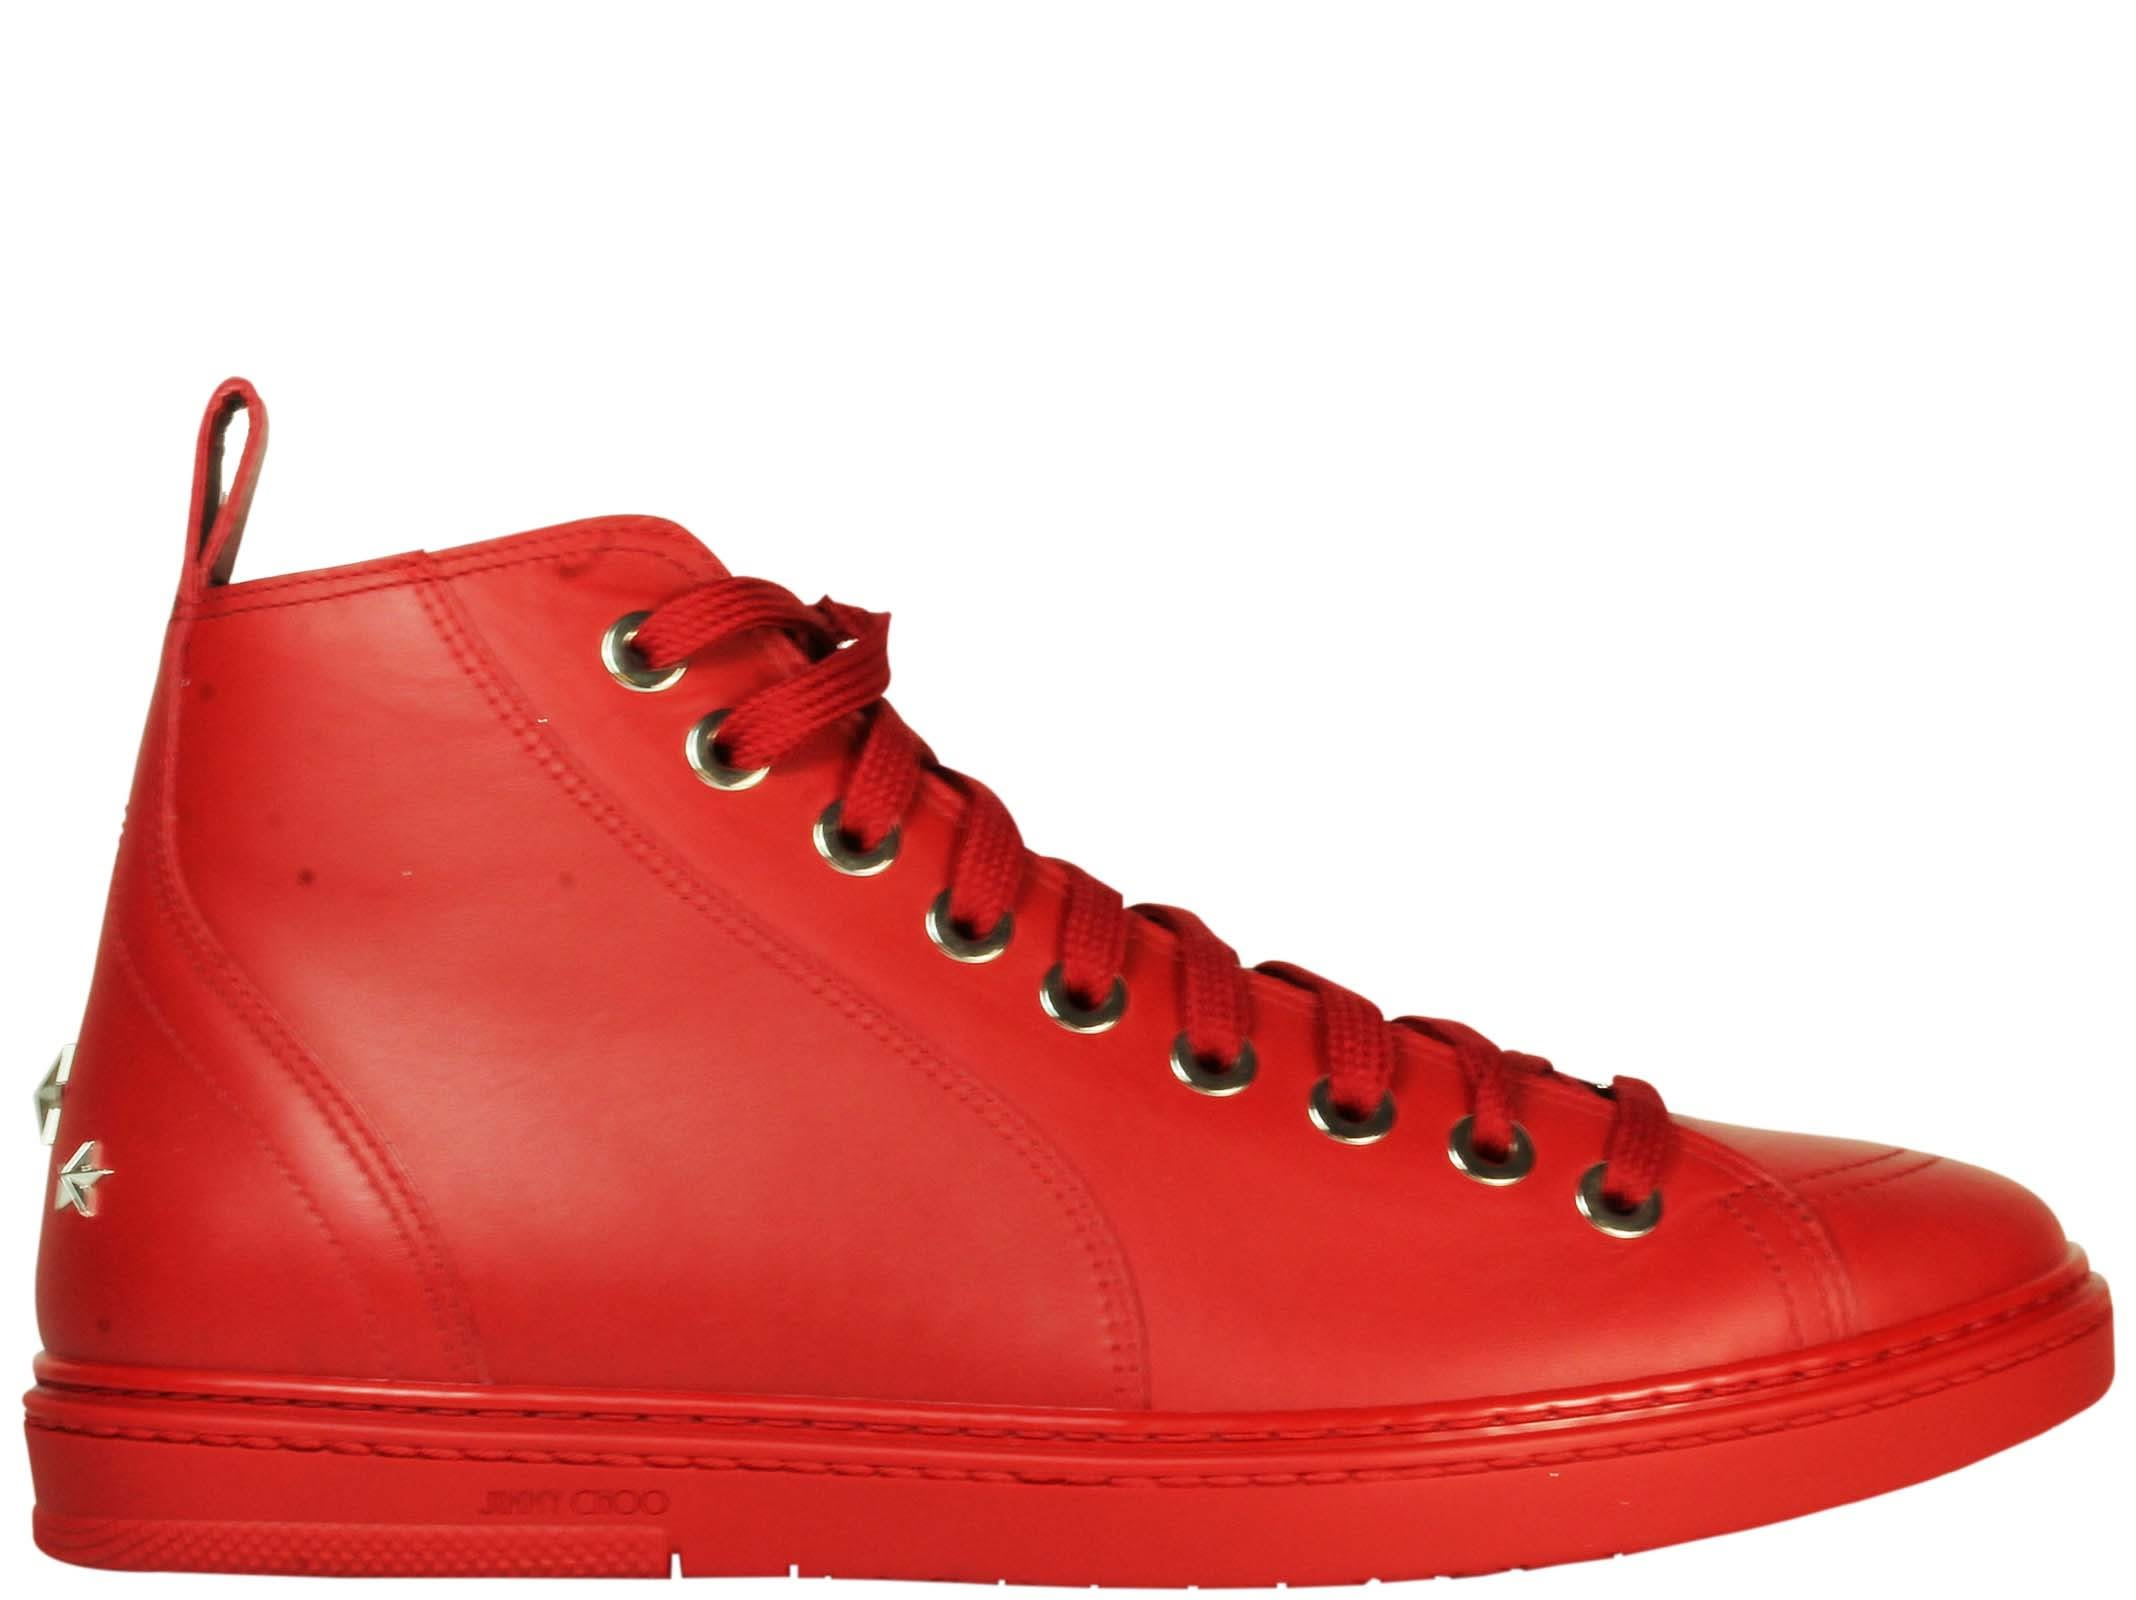 Jimmy Choo Colt Deep Red Hi-top Sneakers